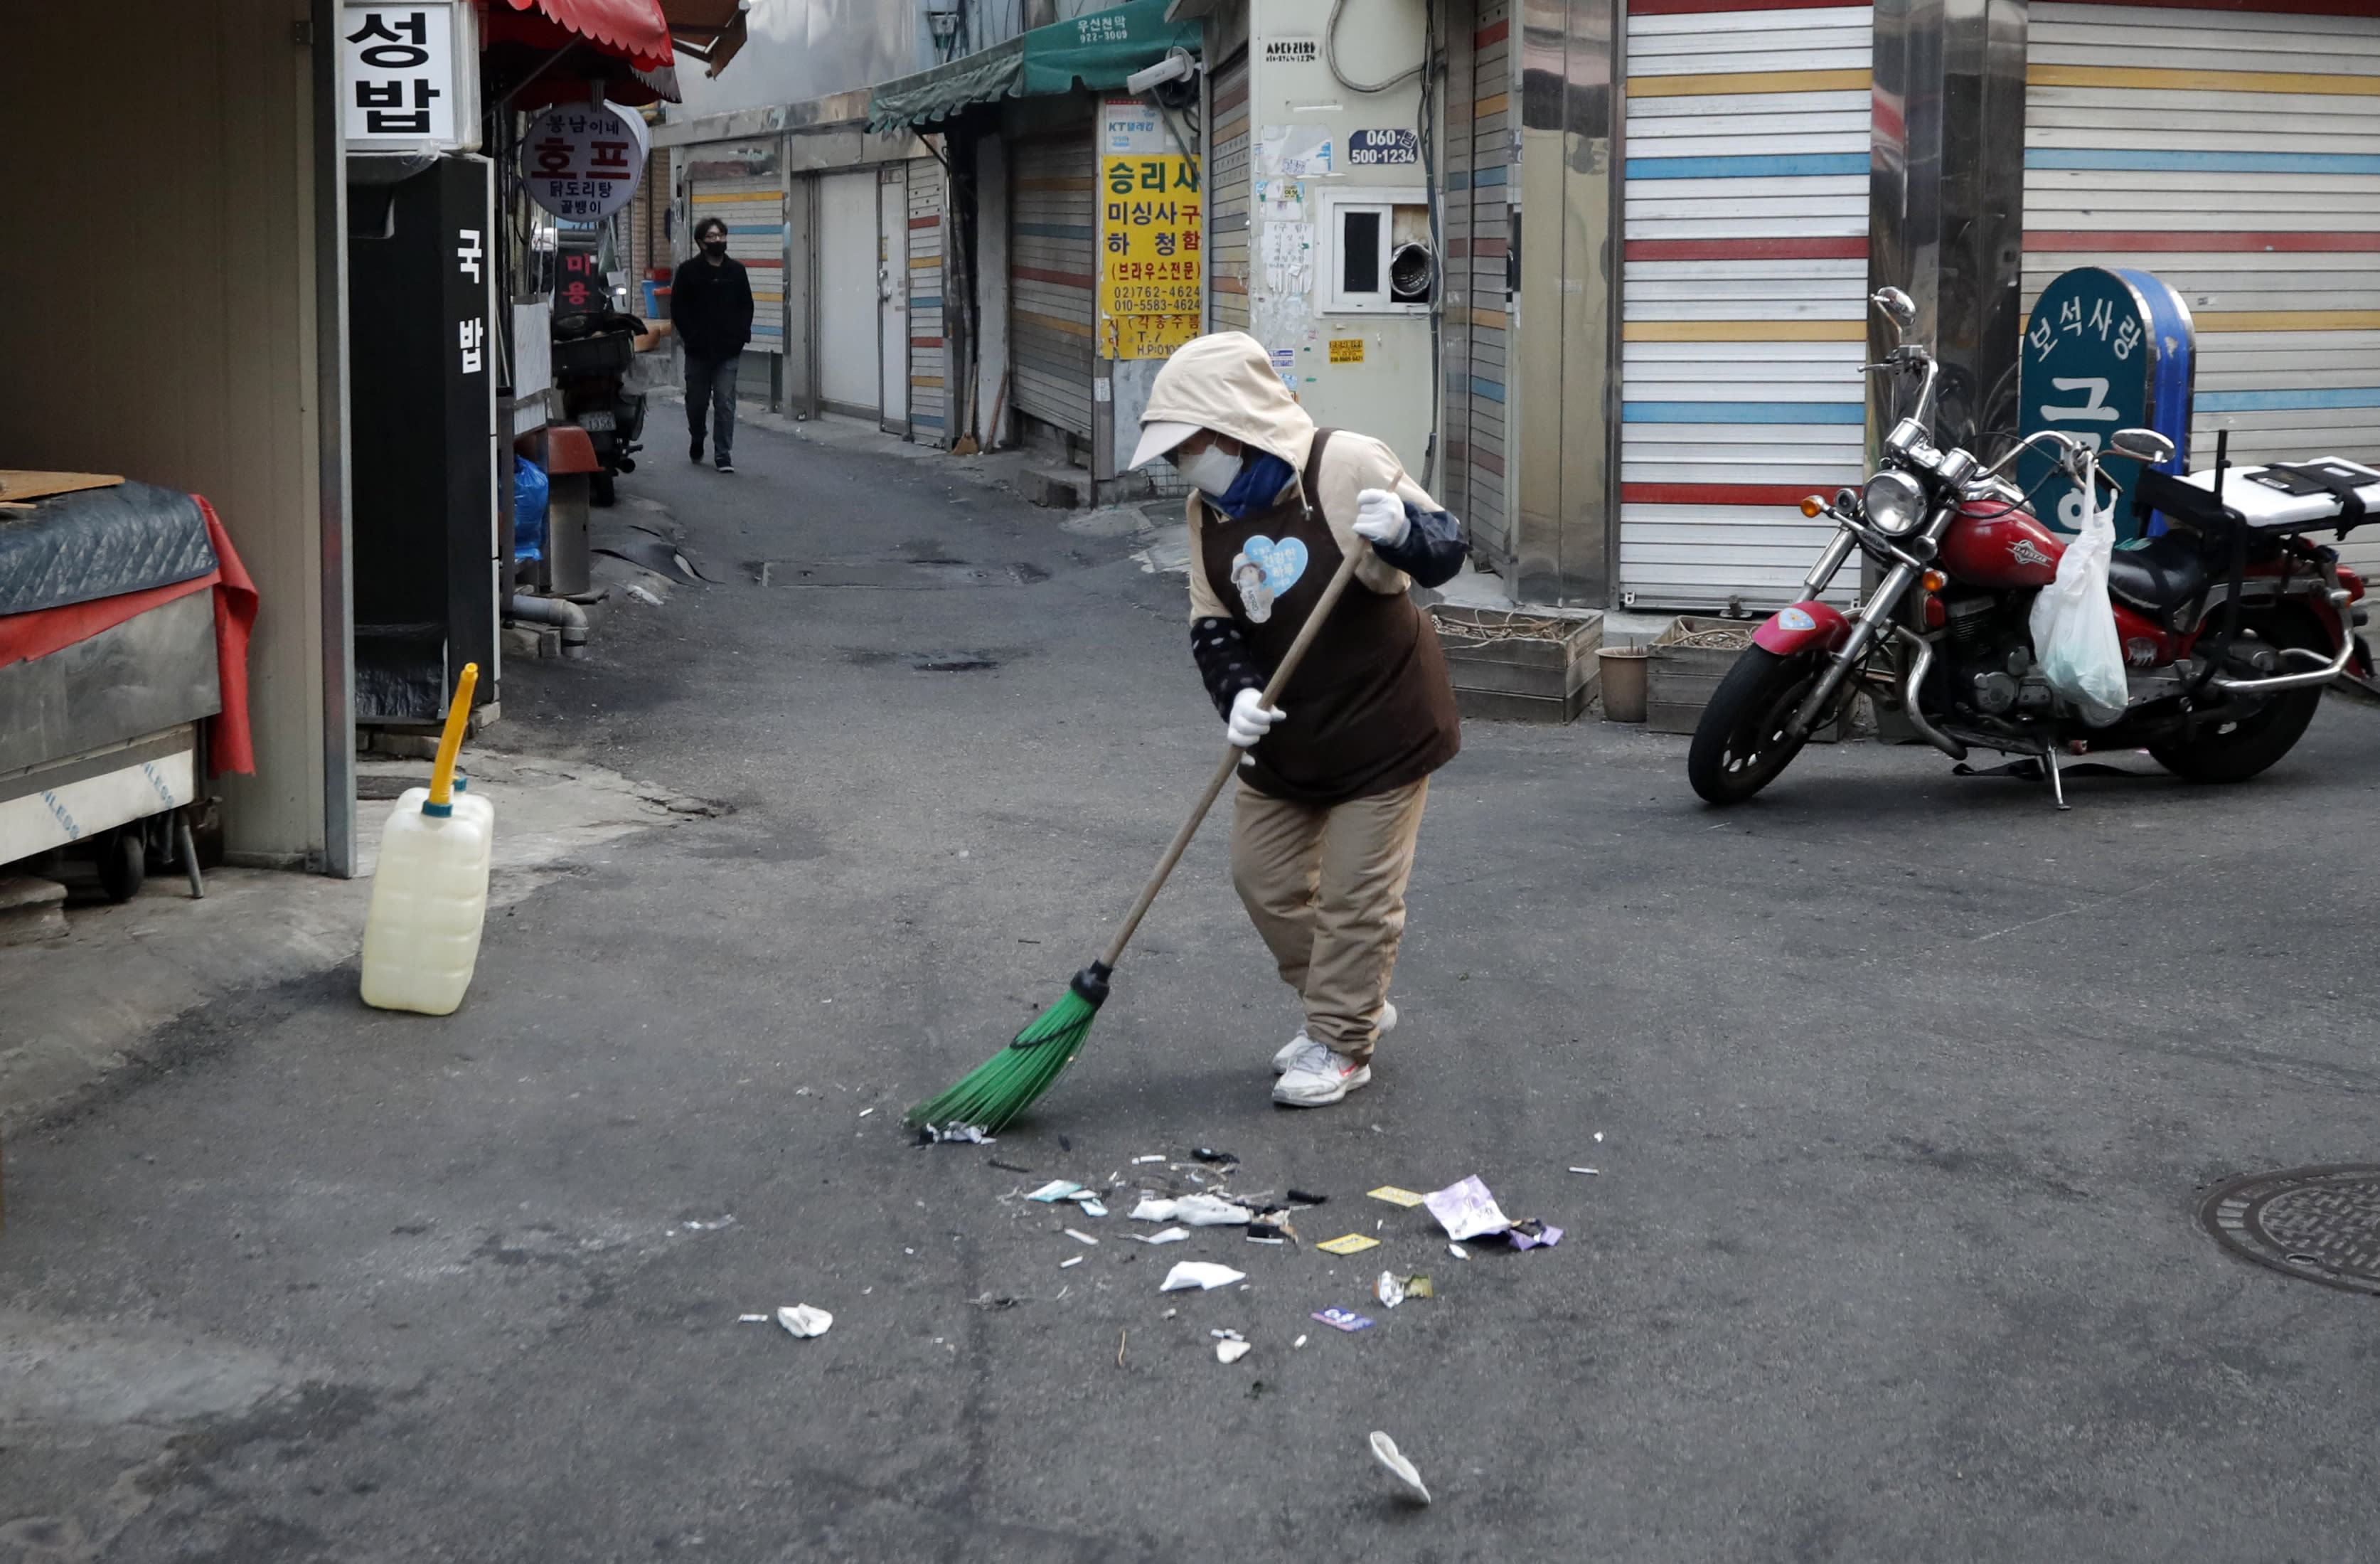 A woman wearing a face mask sweeps on the street in the morning in Seoul, South Korea, Wednesday, March 18, 2020. For most people, the new coronavirus causes only mild or moderate symptoms. For some it can cause more severe illness. (AP Photo/Lee Jin-man)